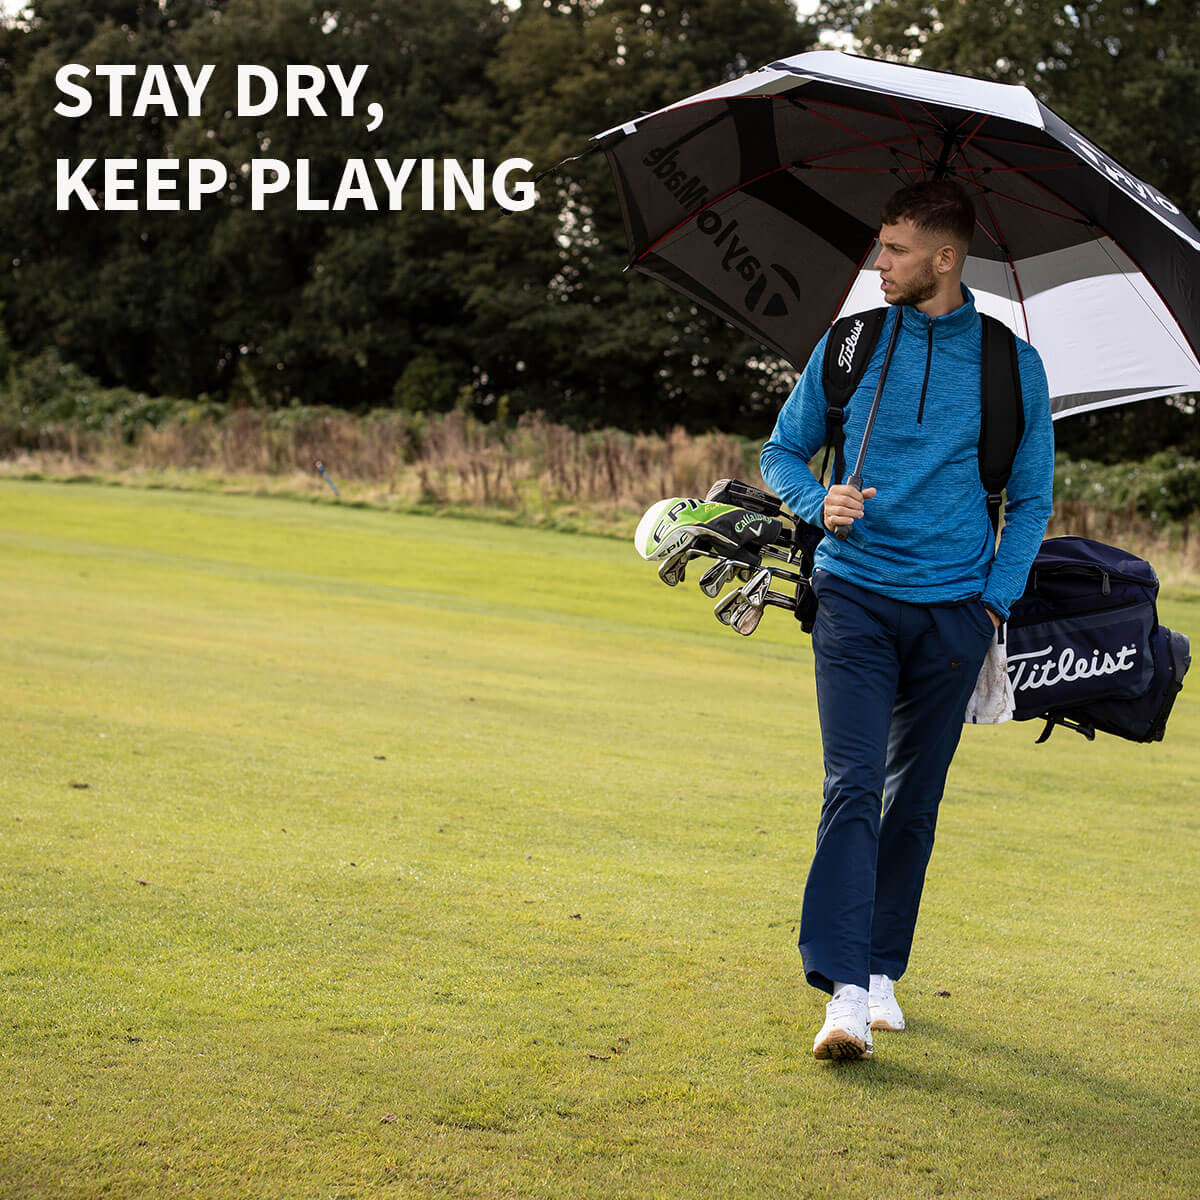 STAY DRY KEEP PLAYING